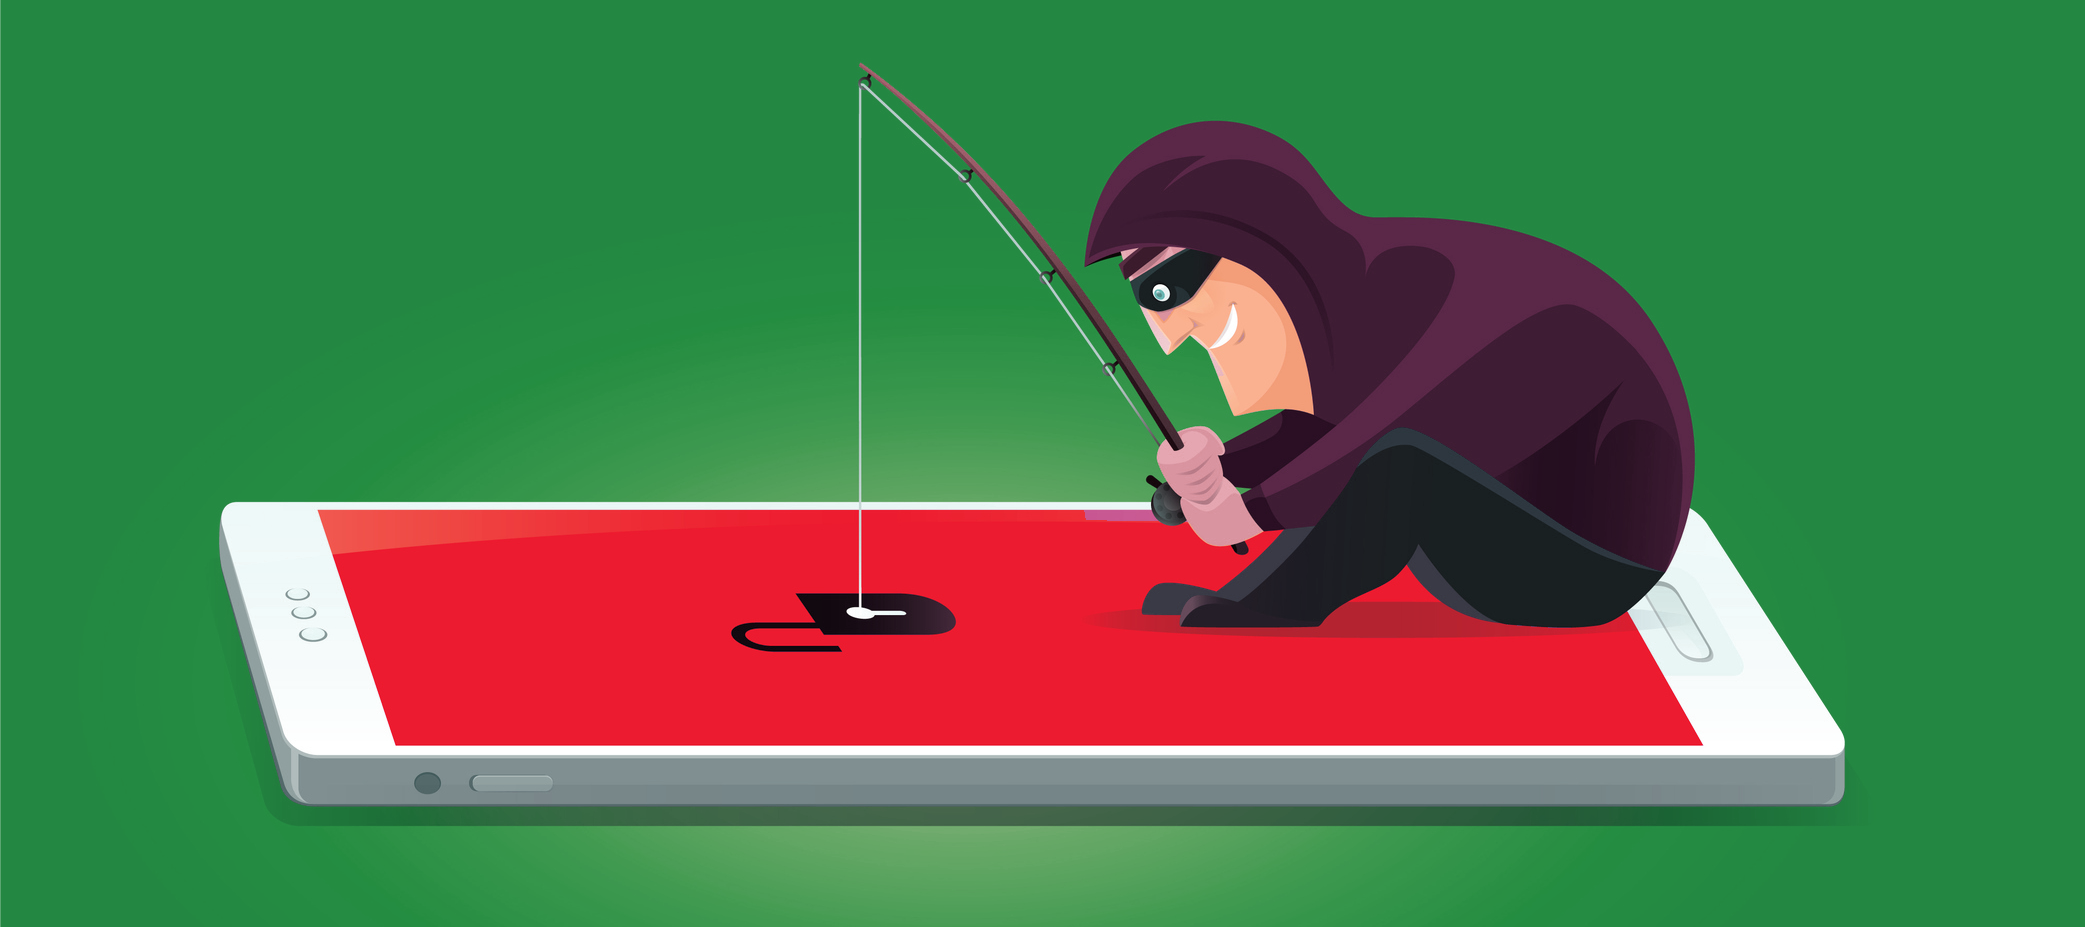 How to avoid phishing attack attempts by hackers